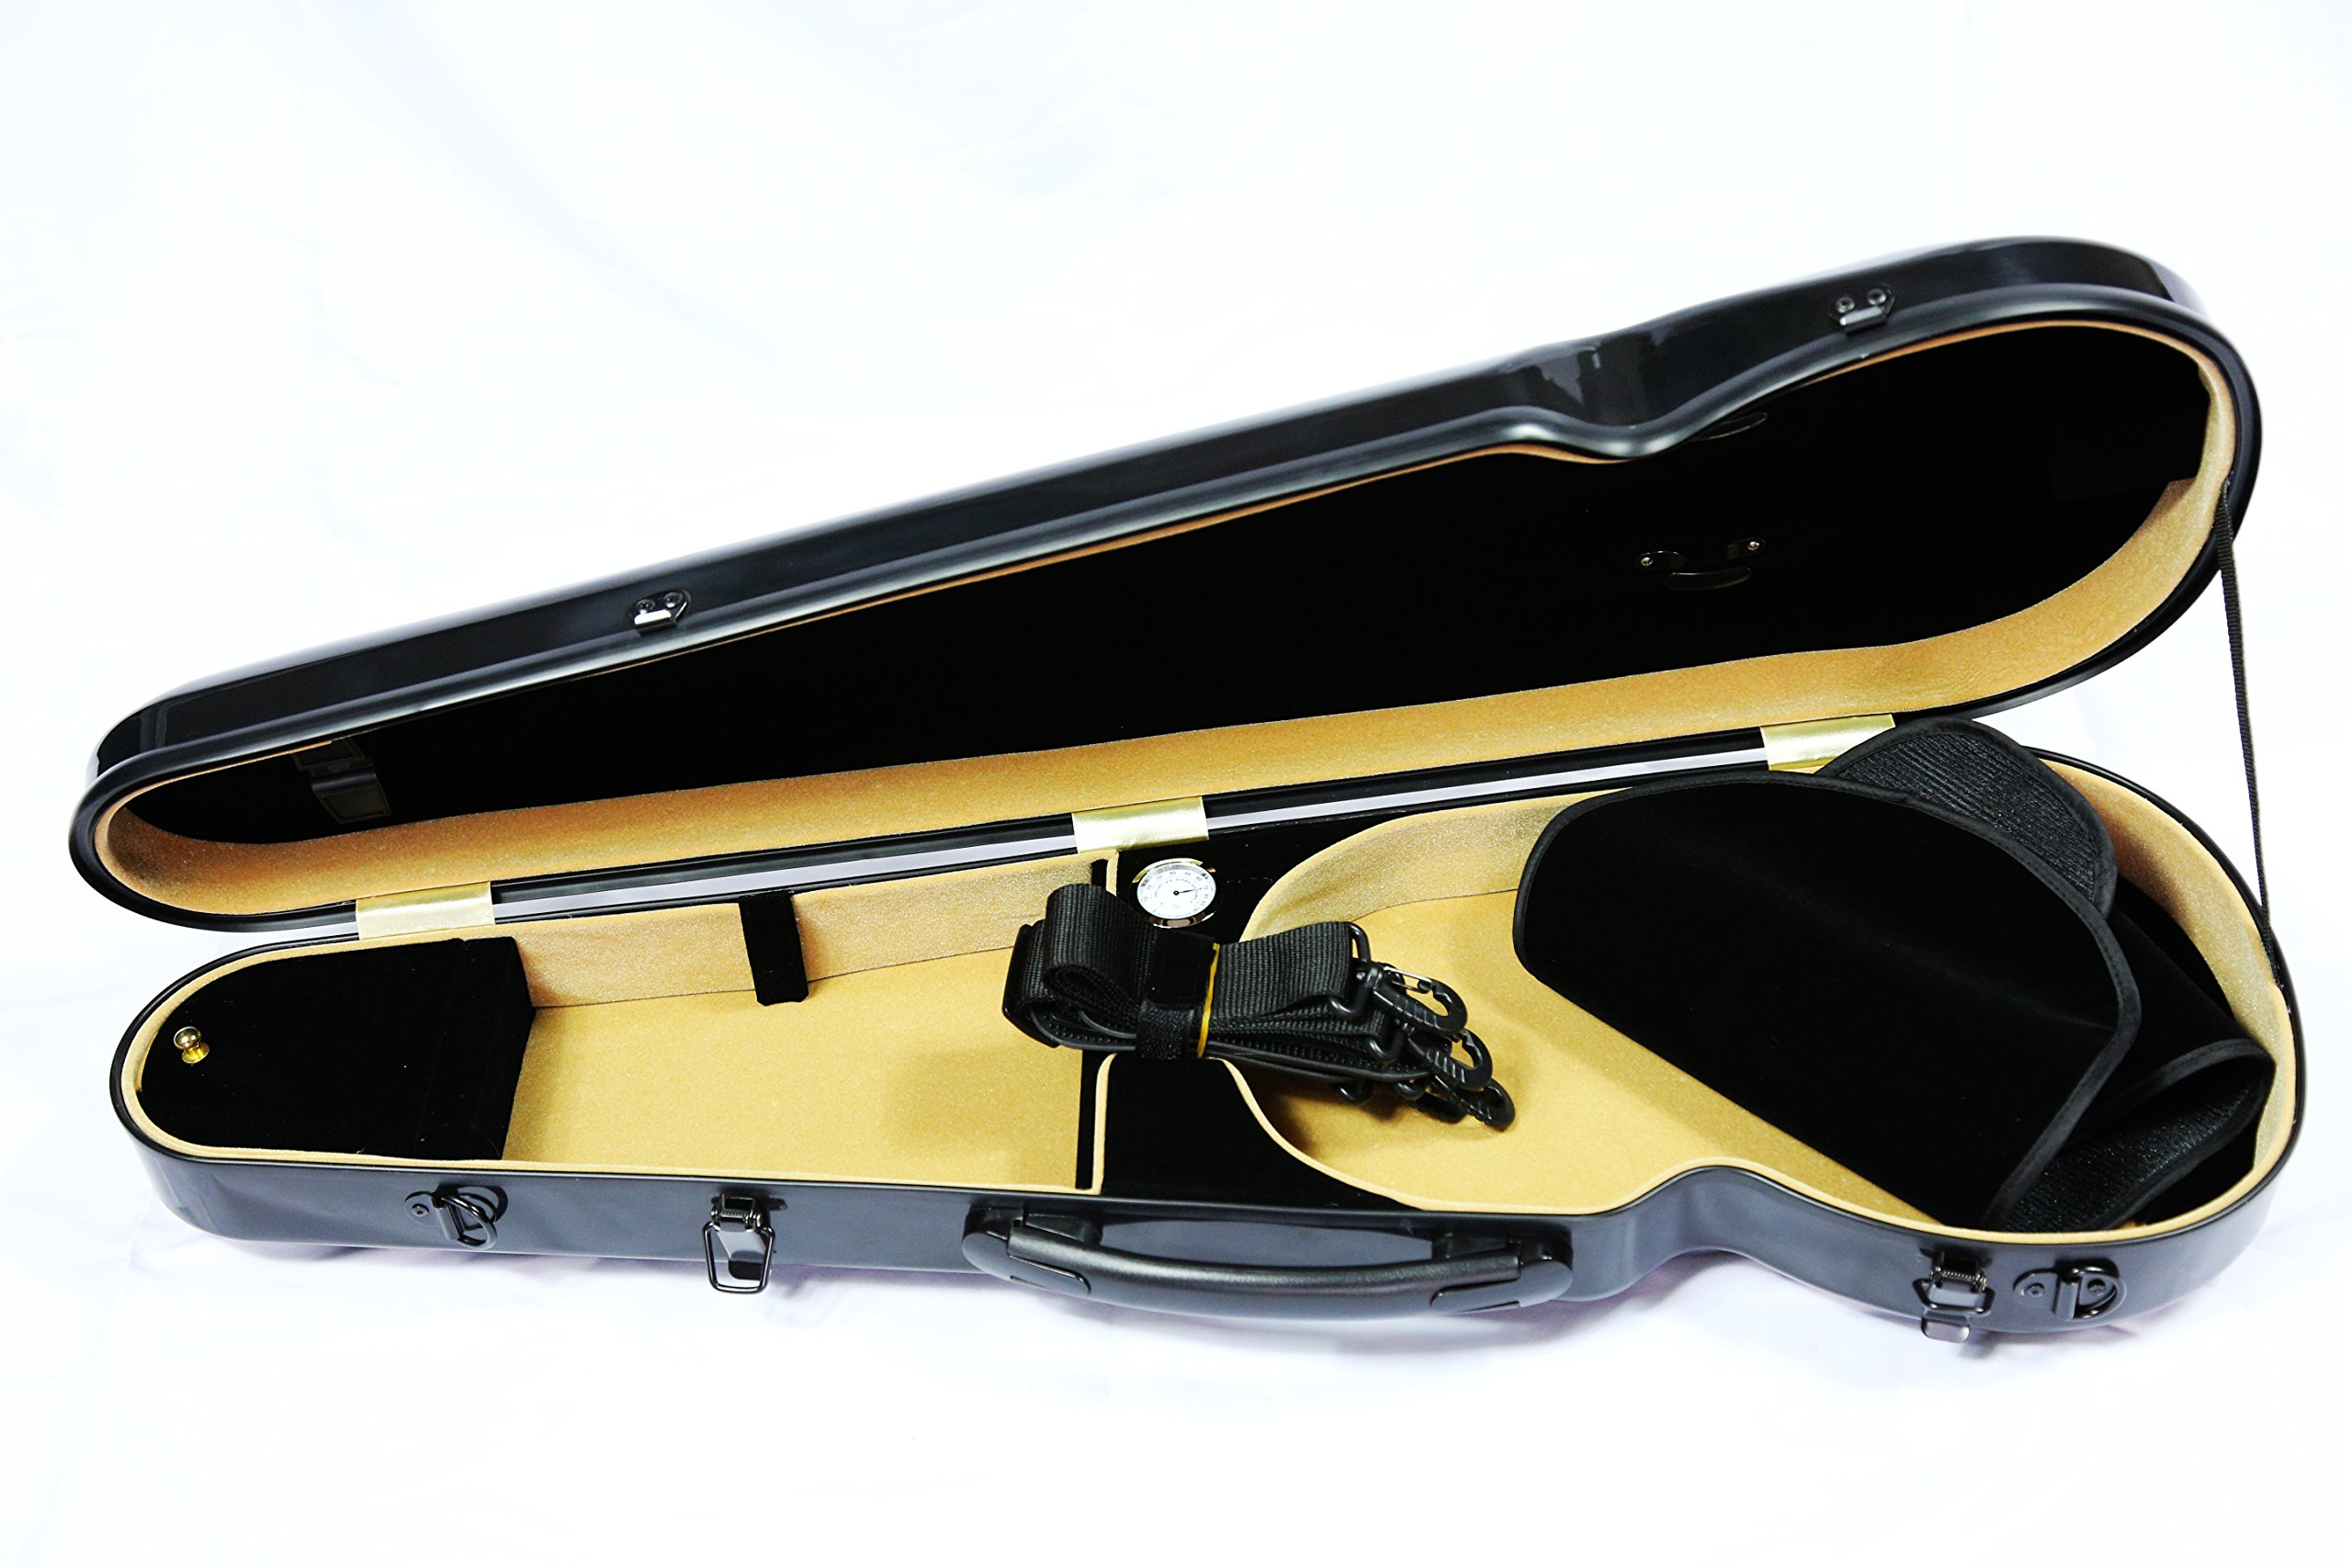 Vio Music Full Size Hightech Carbon-Like Combo Violin Case 4/4-Black, New Design